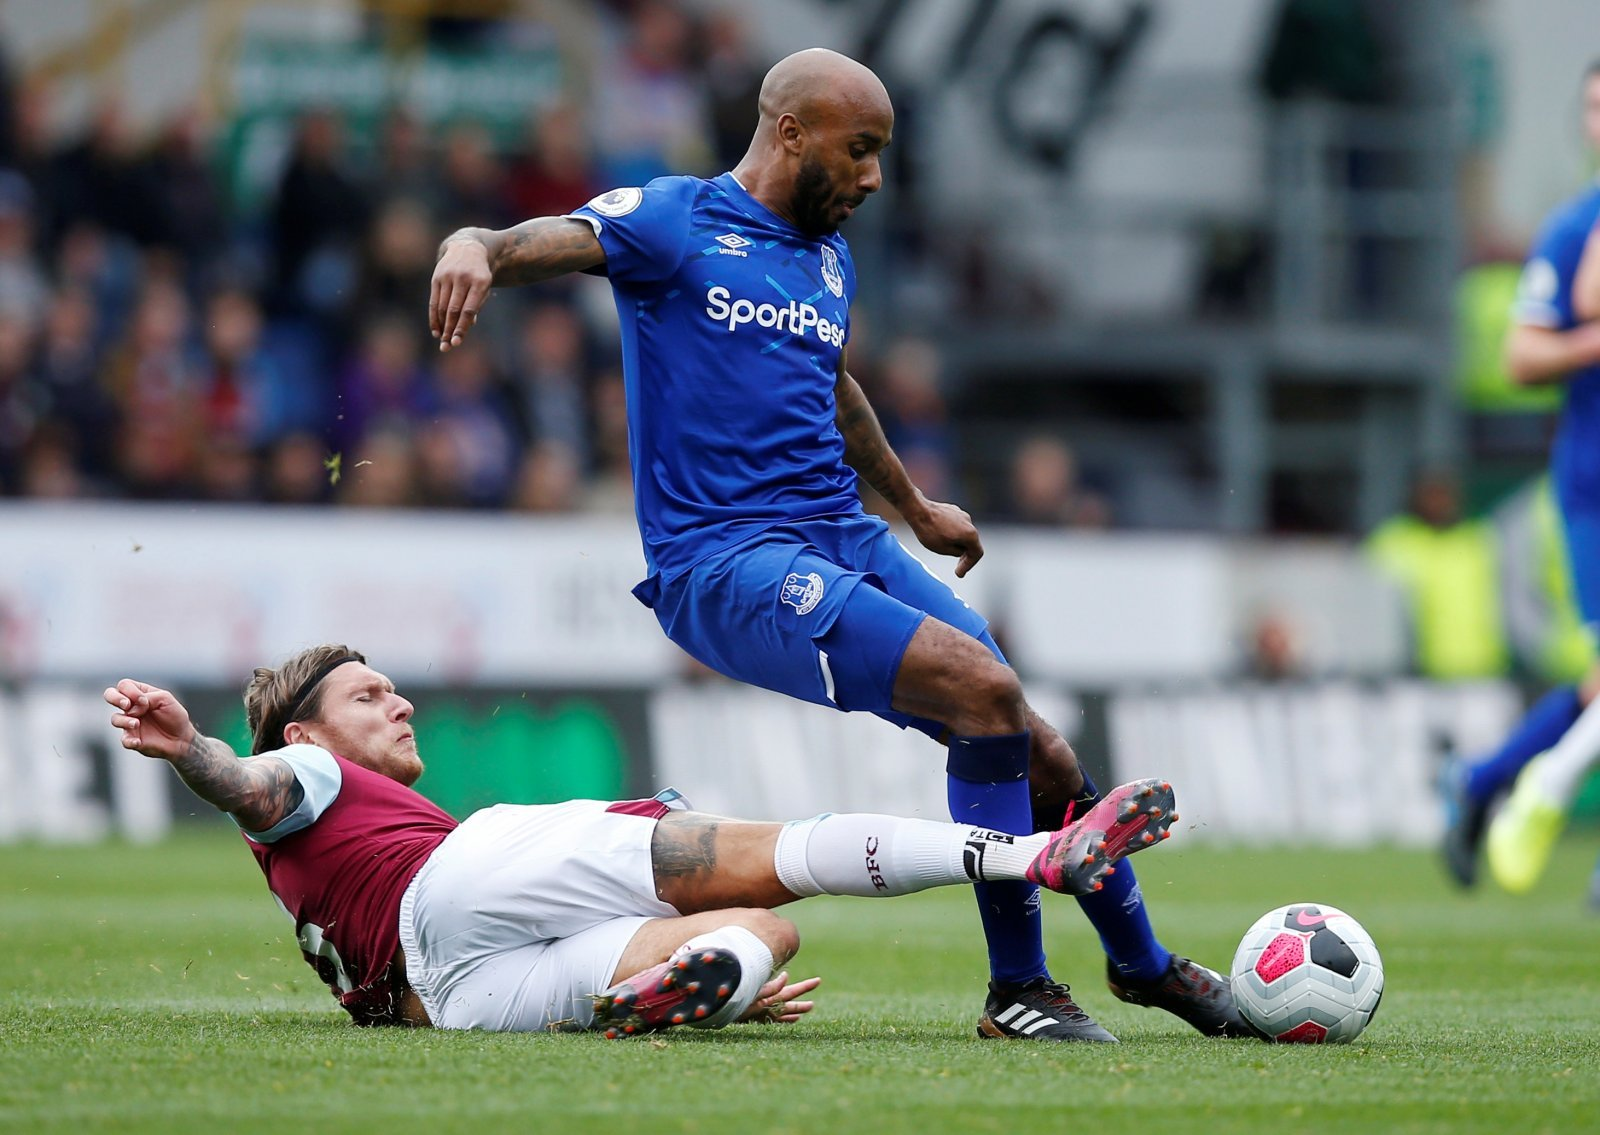 Everton: Marco Silva confirms Theo Walcott fit to face West Ham United but Fabian Delph a doubt